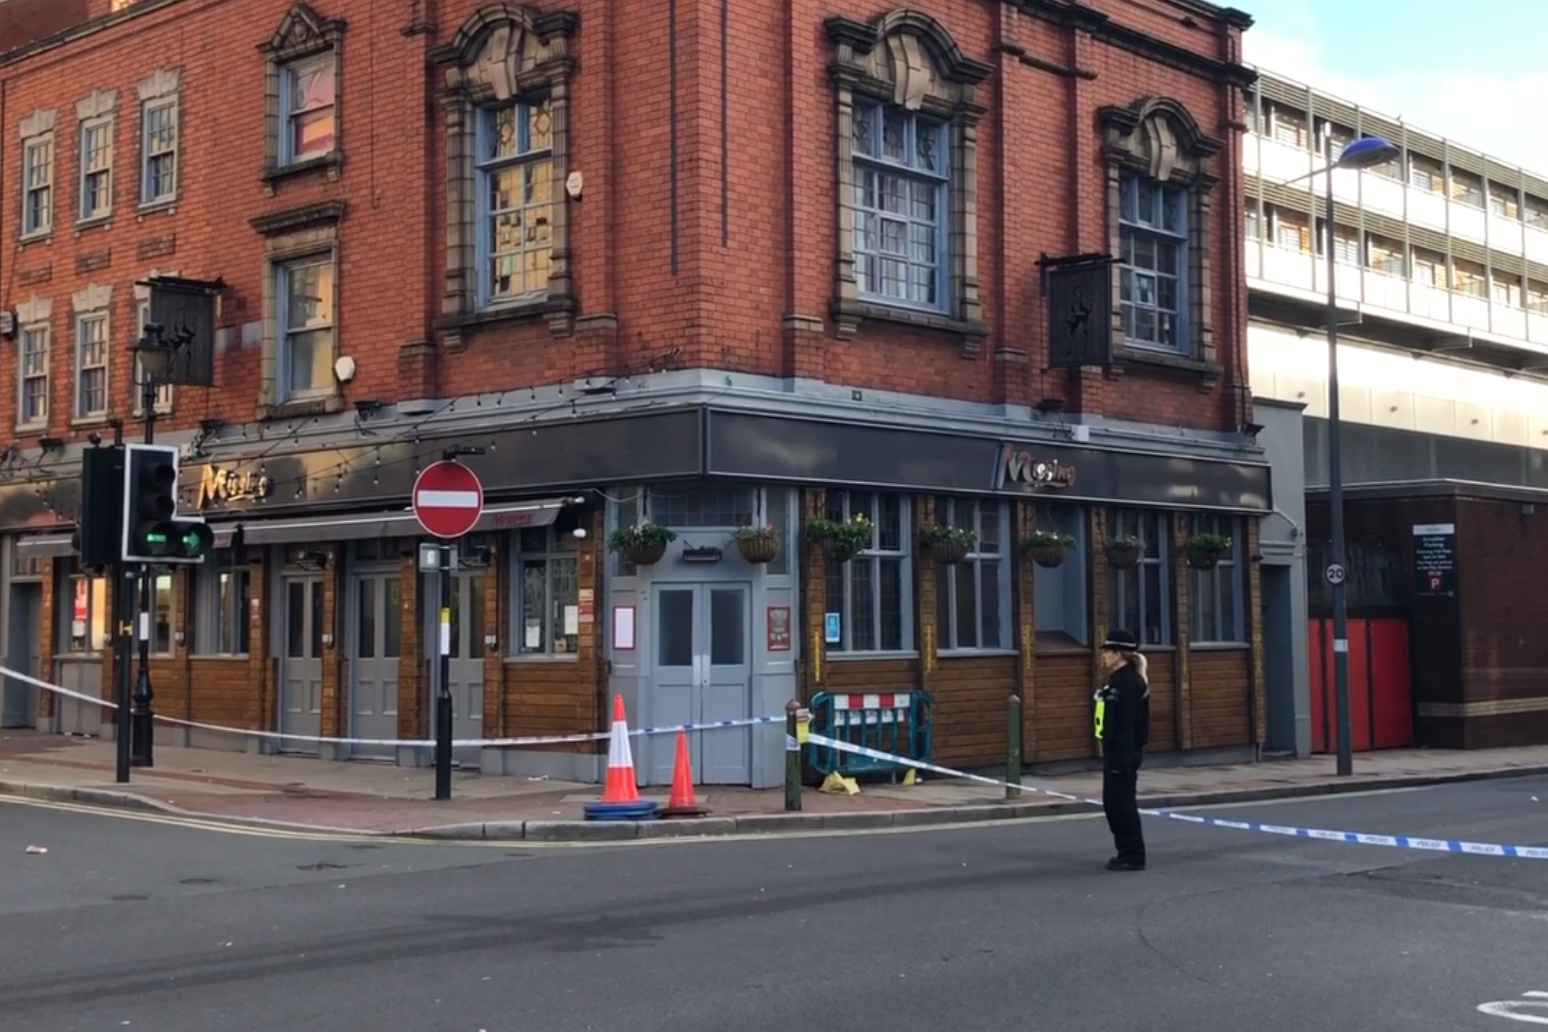 Major incident declared after multiple stabbings in Birmingham